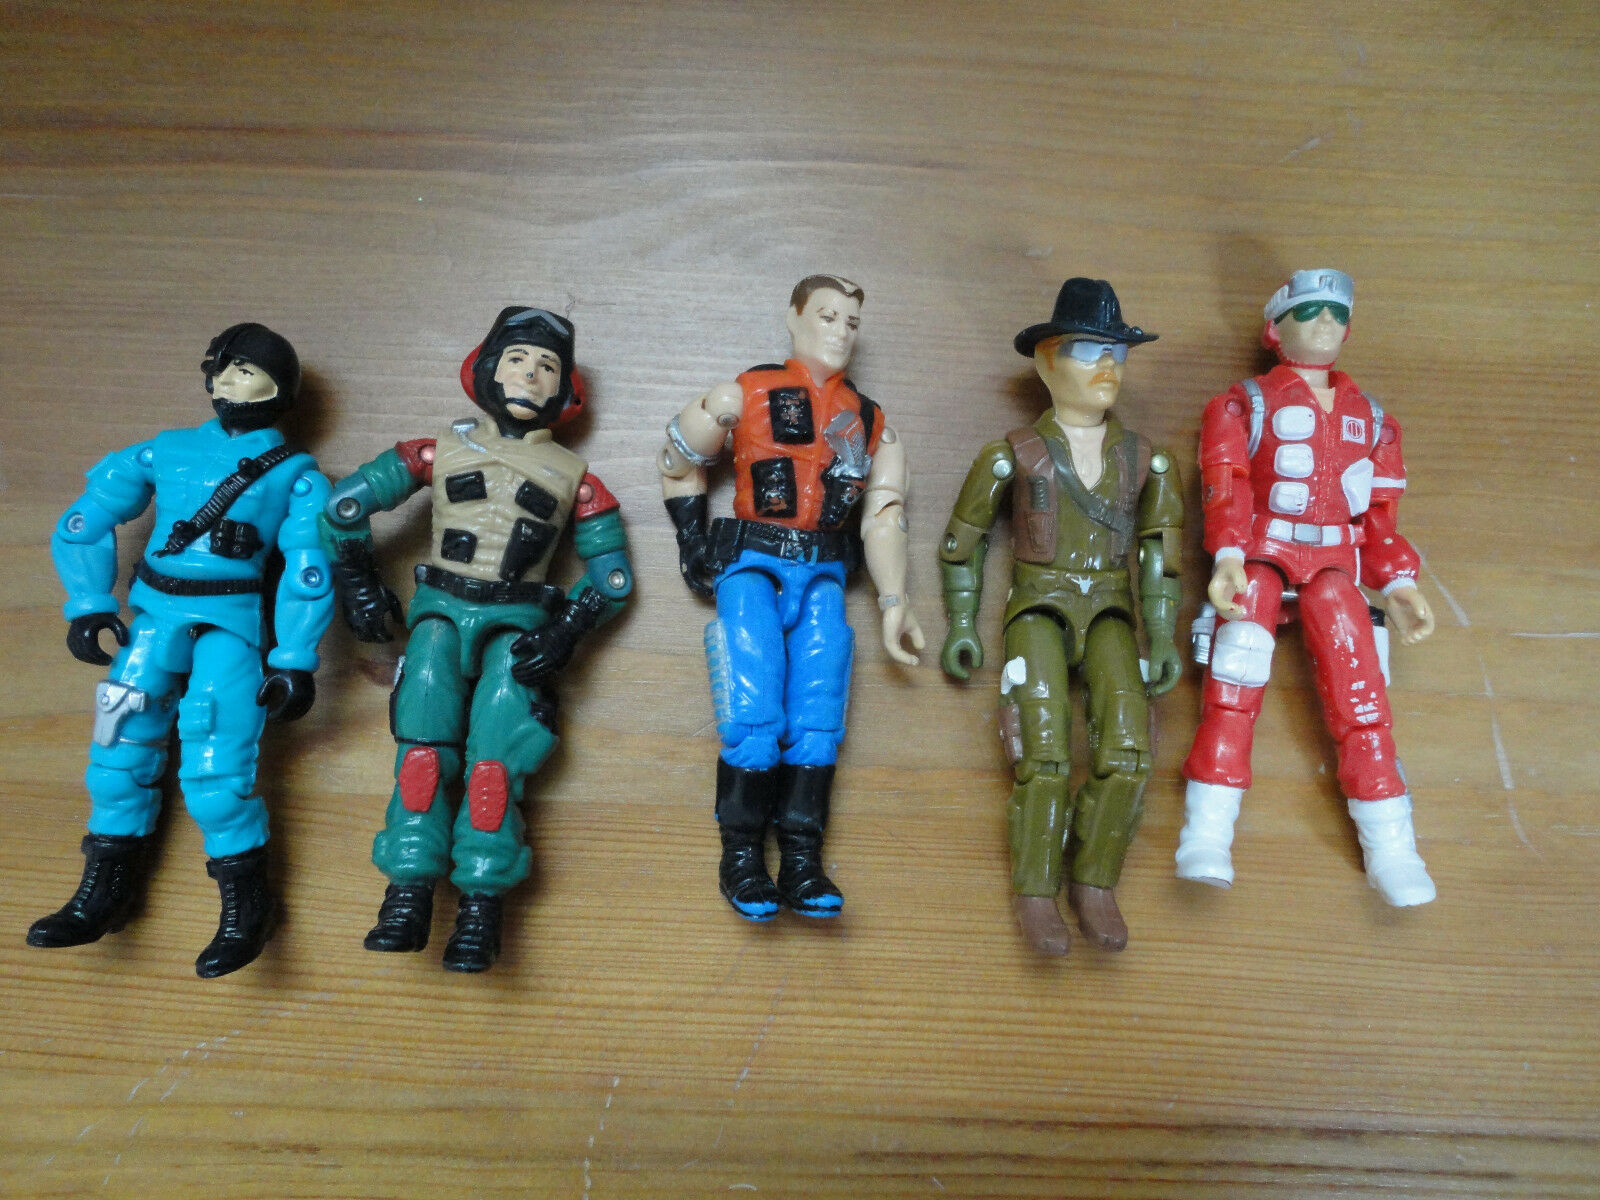 GI Joe Action Figures Mixed Lot 5 Hasbro 3.5 inch Assorted Characters Mixed R